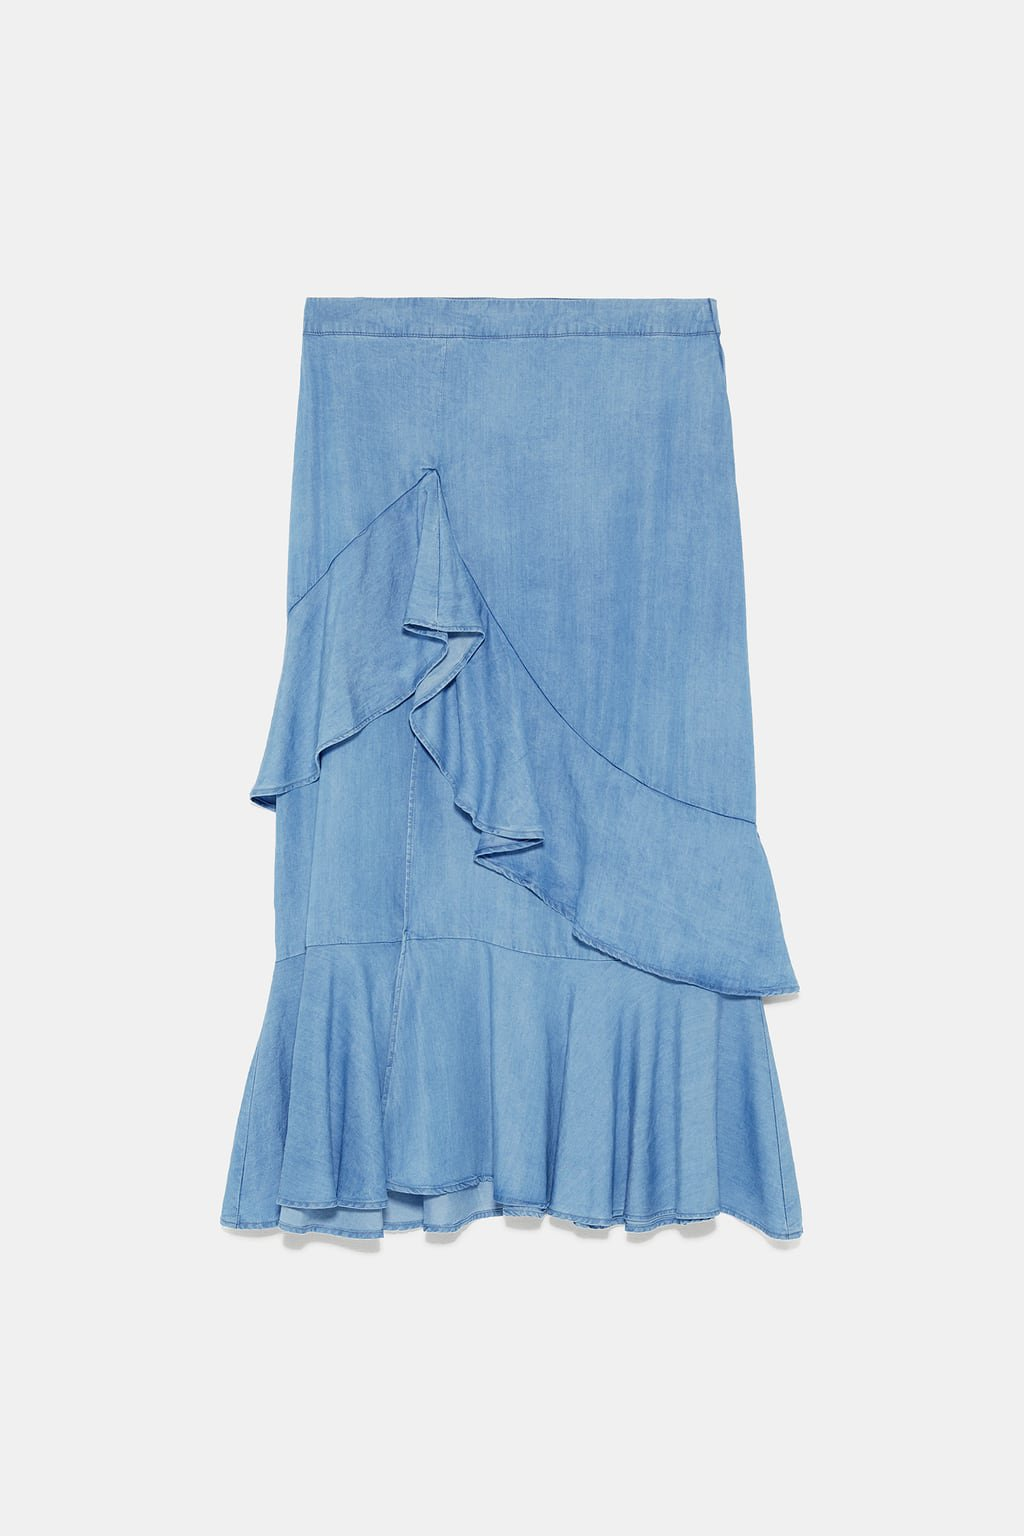 RUFFLED SKIRT - View All-SKIRTS-WOMAN | ZARA United States blue